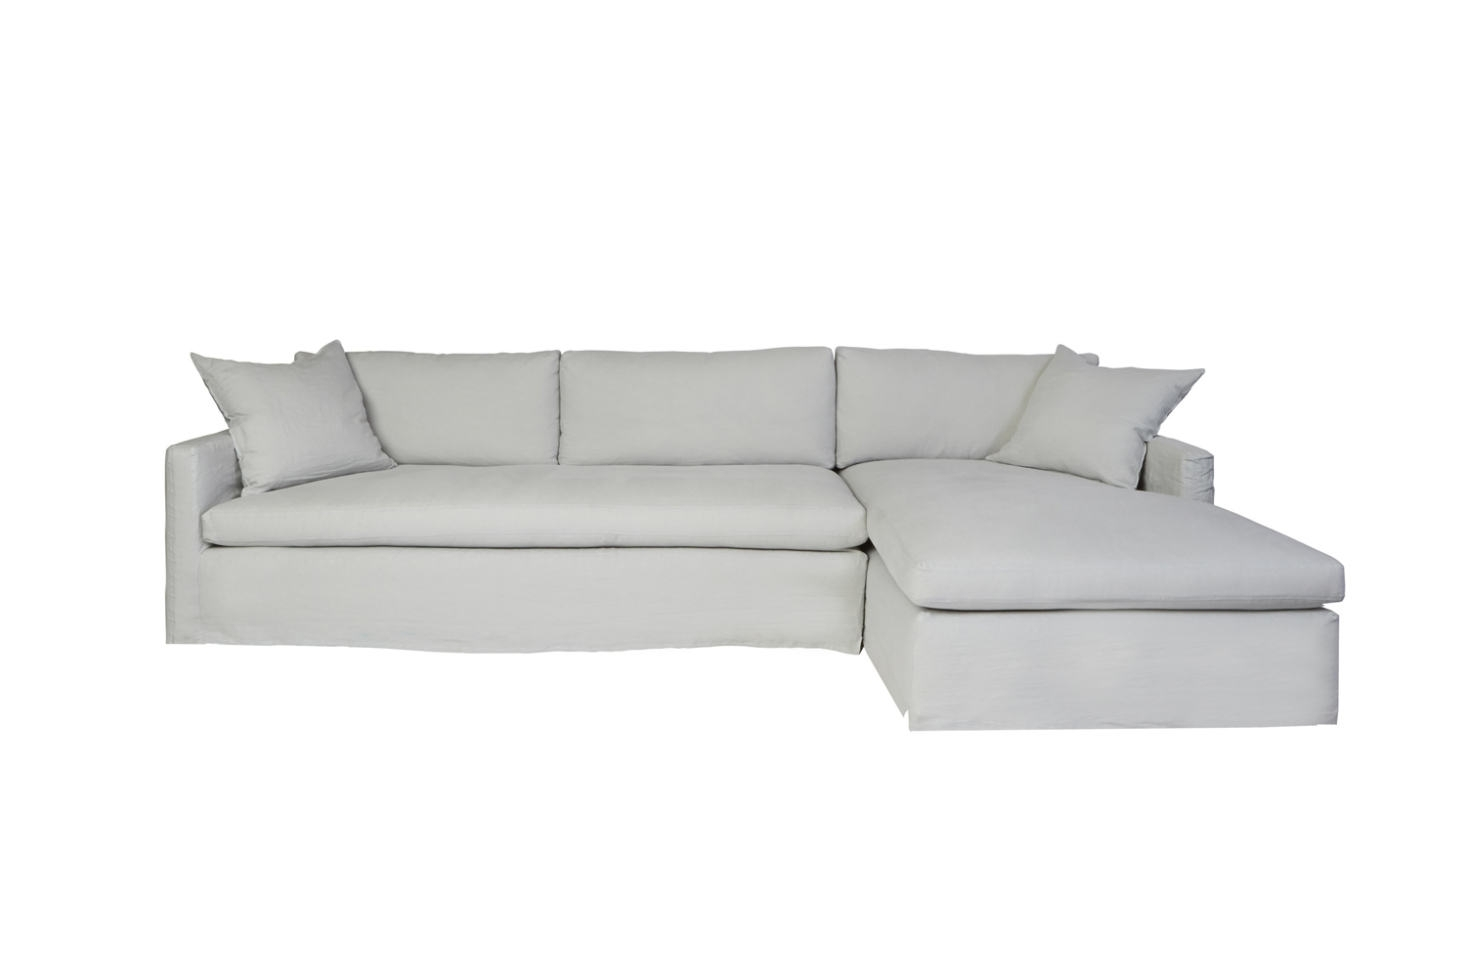 10 Easy Pieces: Sectional Chaise Sofas – Remodelista Within Elm Grande Ii 2 Piece Sectionals (Image 13 of 25)